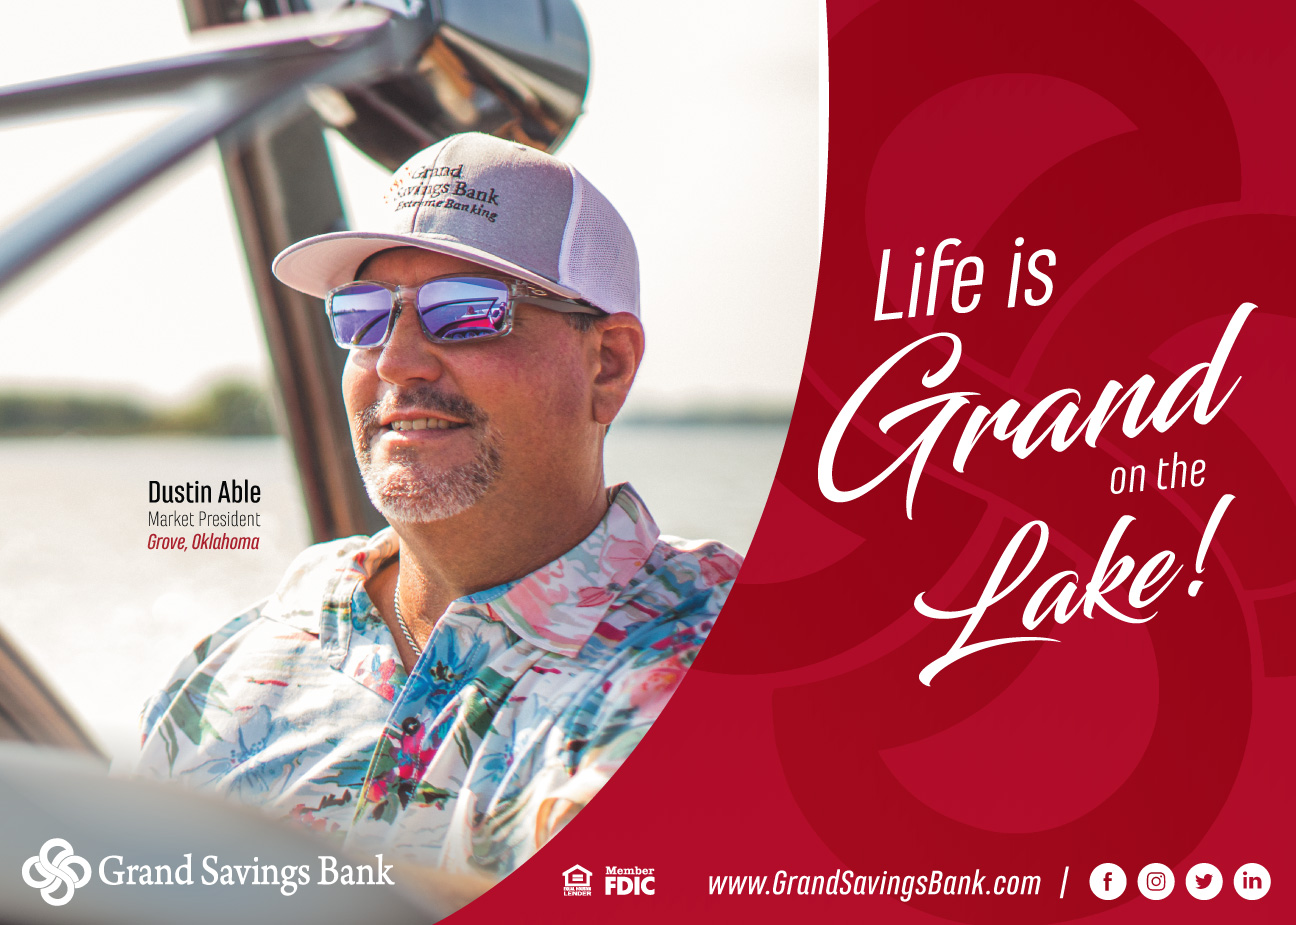 Life is Grand on the Lake